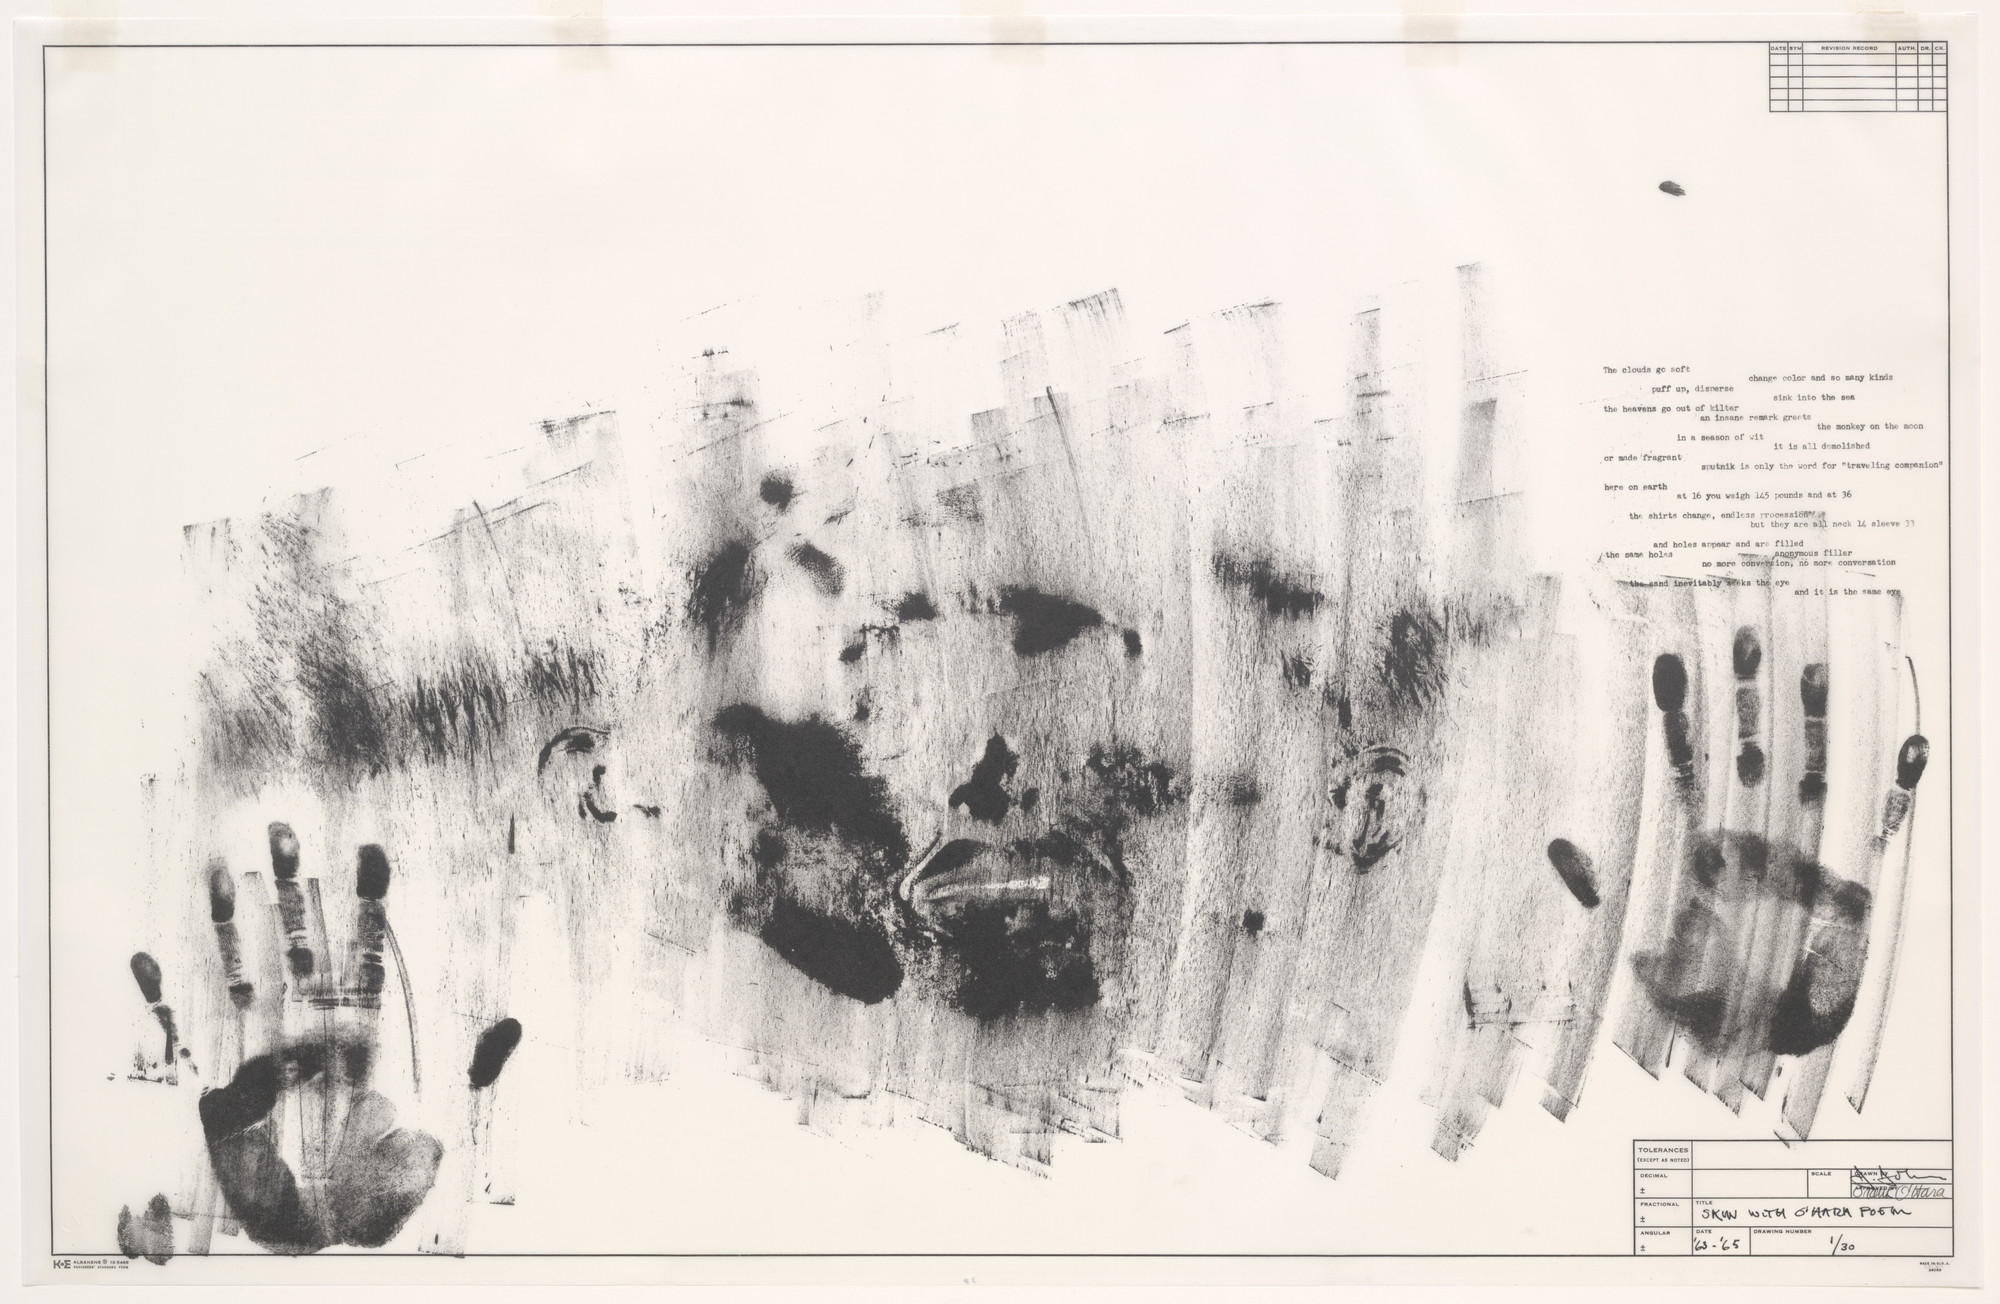 Jasper Johns. Skin with O'Hara Poem. 1963–65